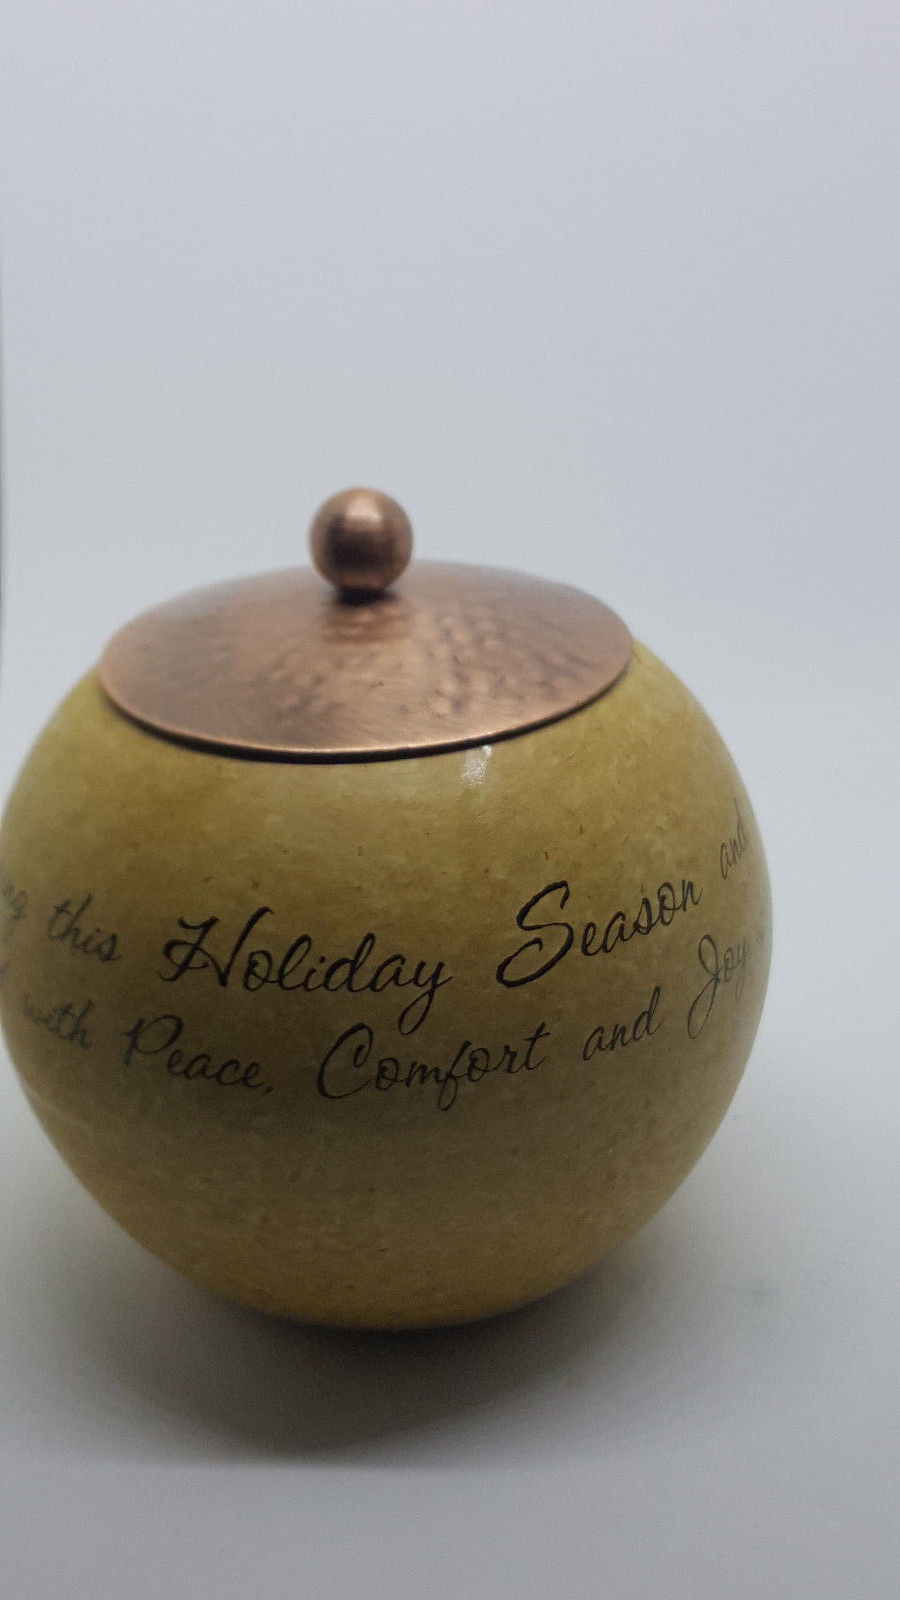 Pavilion Gift Company Comfort Candle 5-Inch Round Candle Holder, Family Holiday